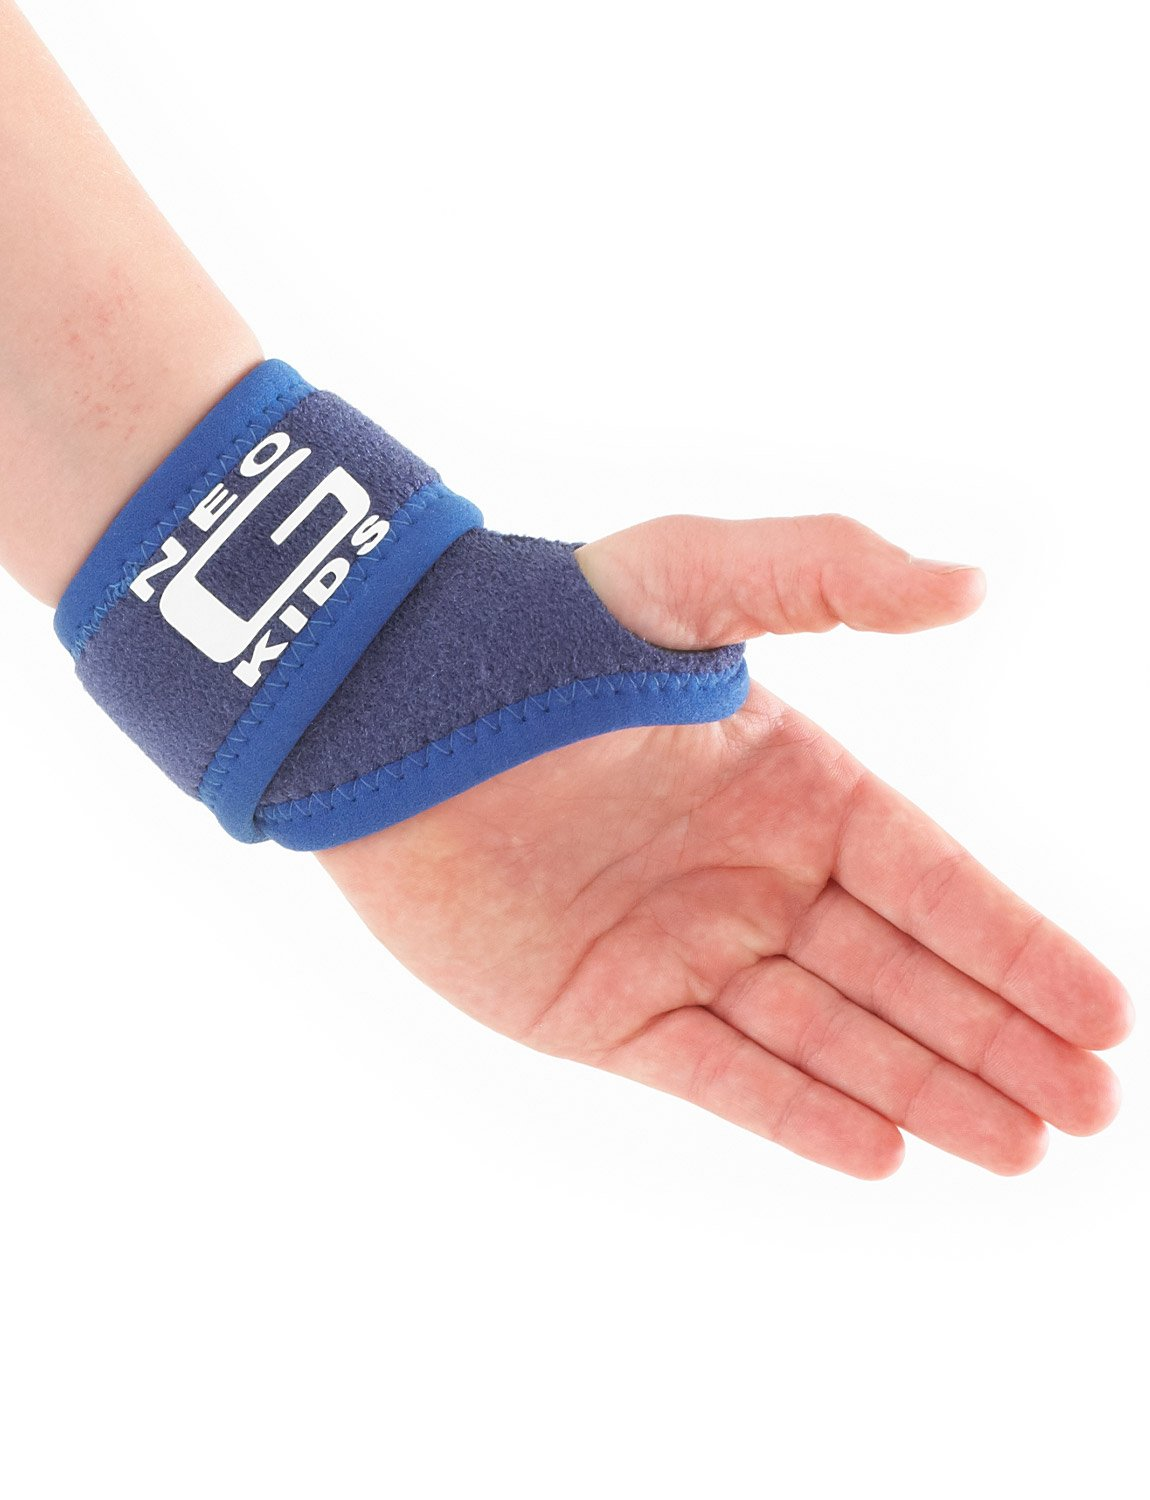 Neo G Wrist Brace for Kids - Support For Juvenile Arthritis, Joint Pain, Hand Sprains, Strains, Sports, Gymnastics, Tennis - Adjustable Compression - Class 1 Medical Device - One Size - Blue by Neo-G (Image #4)